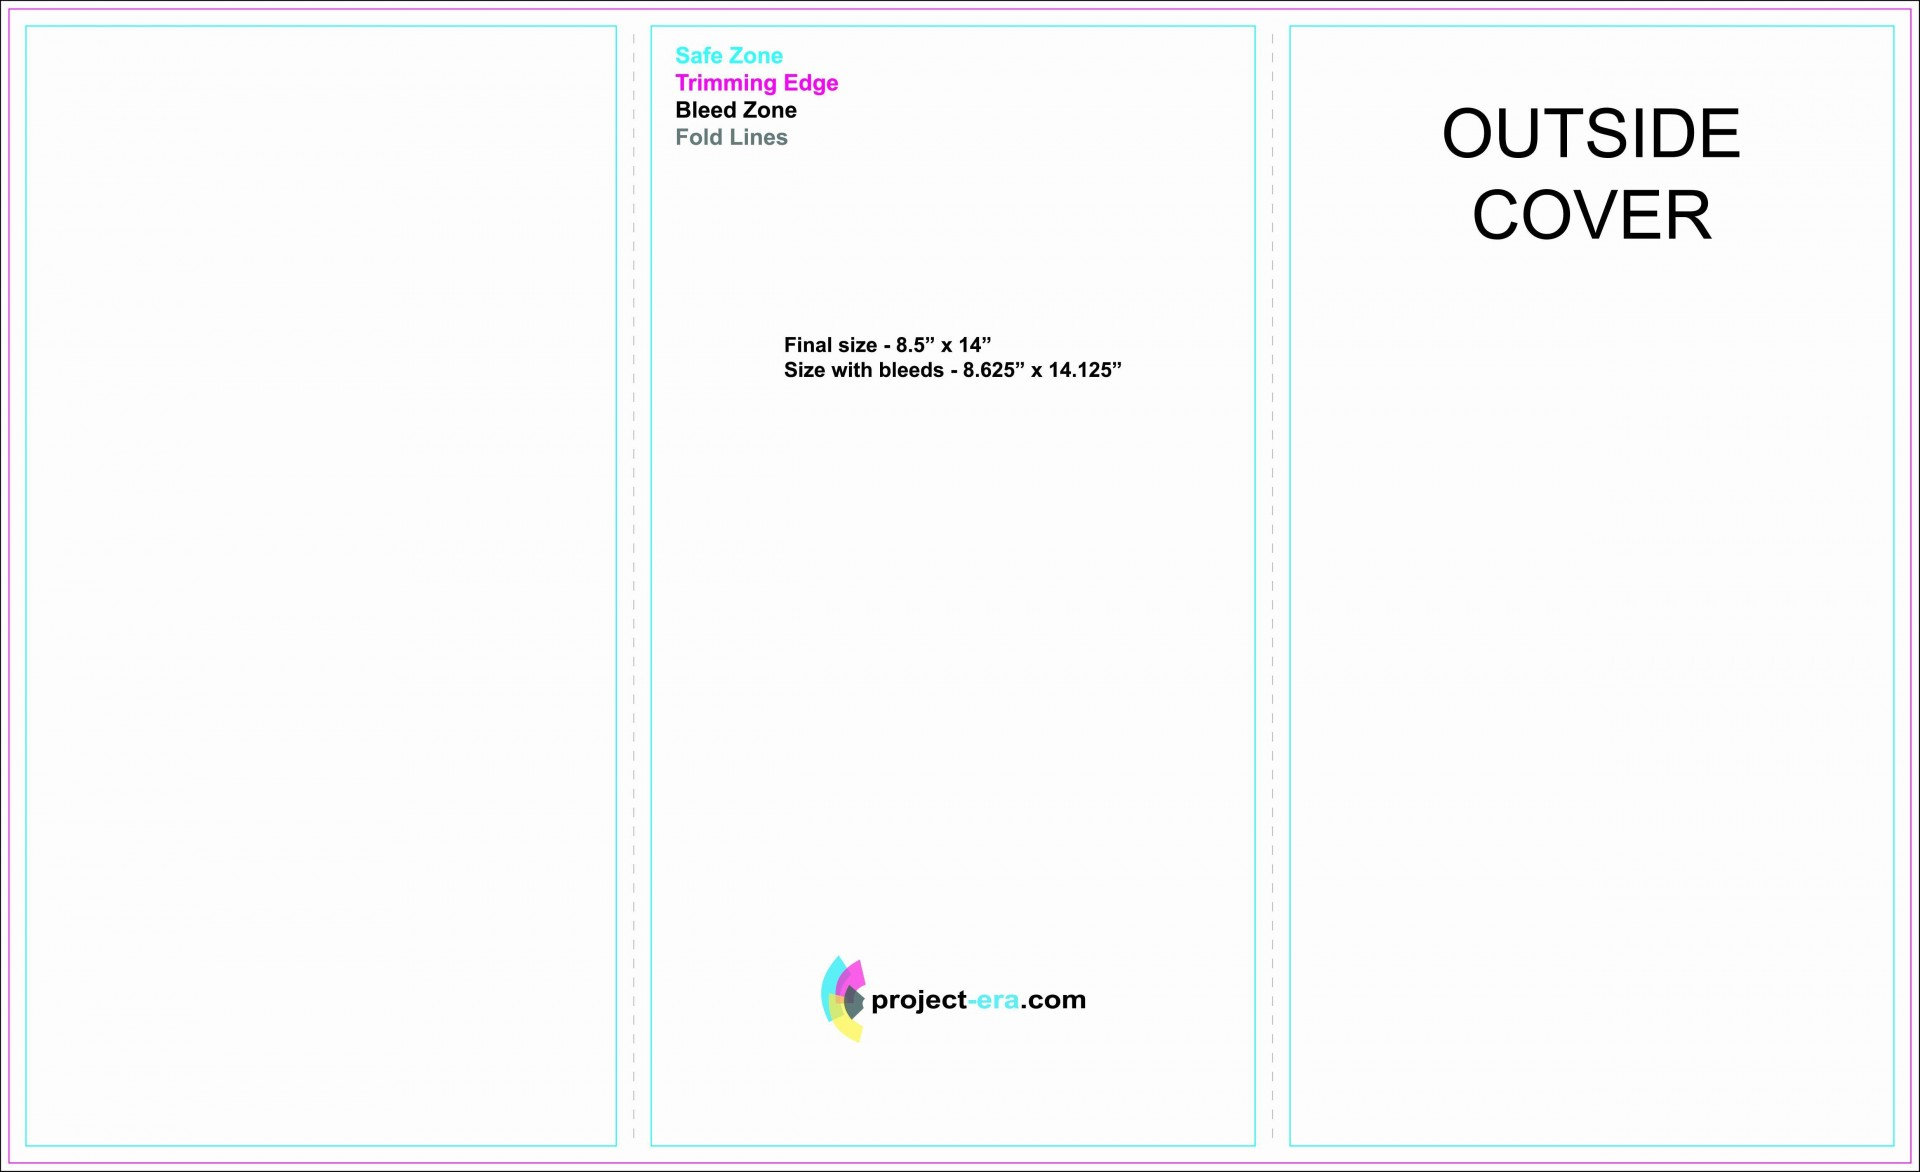 000 Wonderful Template For Trifold Brochure Highest Clarity  Tri Fold Indesign A4 Free In Word Download1920